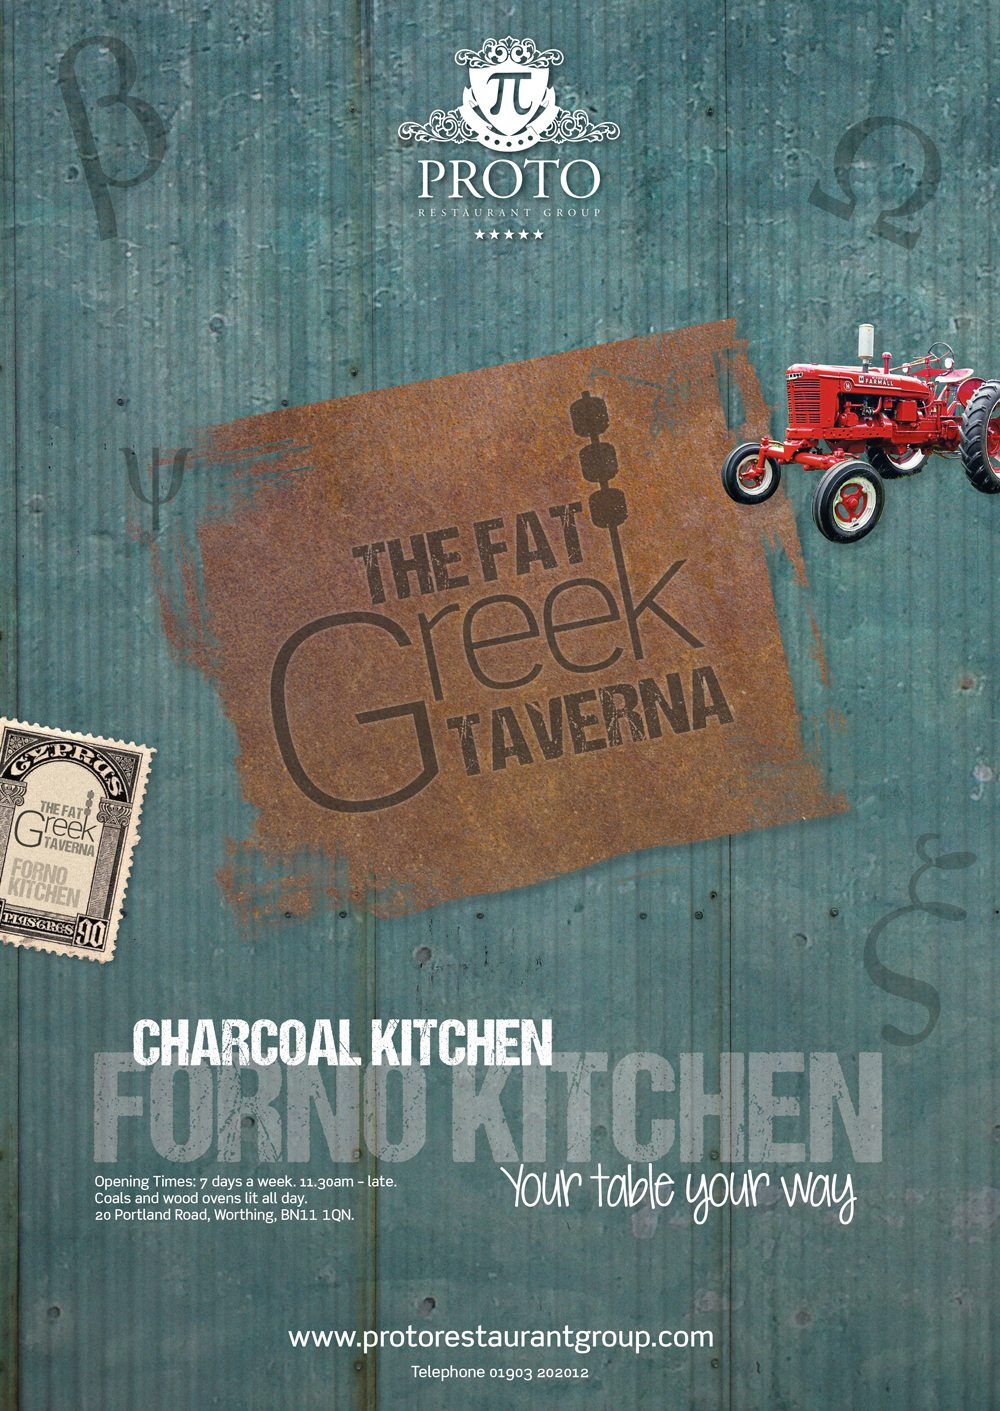 Corporate identity and logo design Fat Greek Taverna restaurant